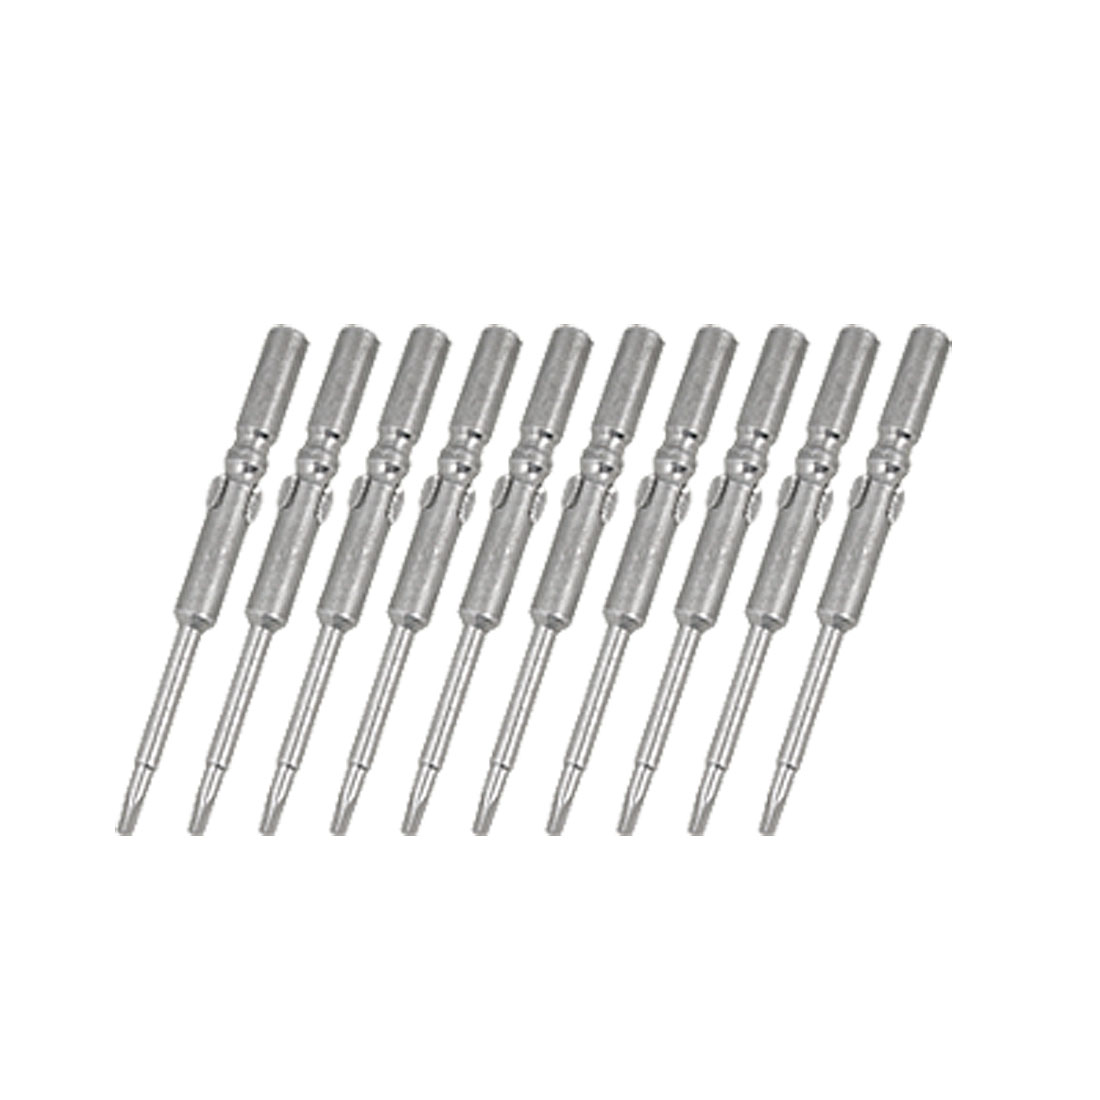 10 PCS Screwdriver Round Shank 5 x 60 x 2mm Triangle Bits Tips